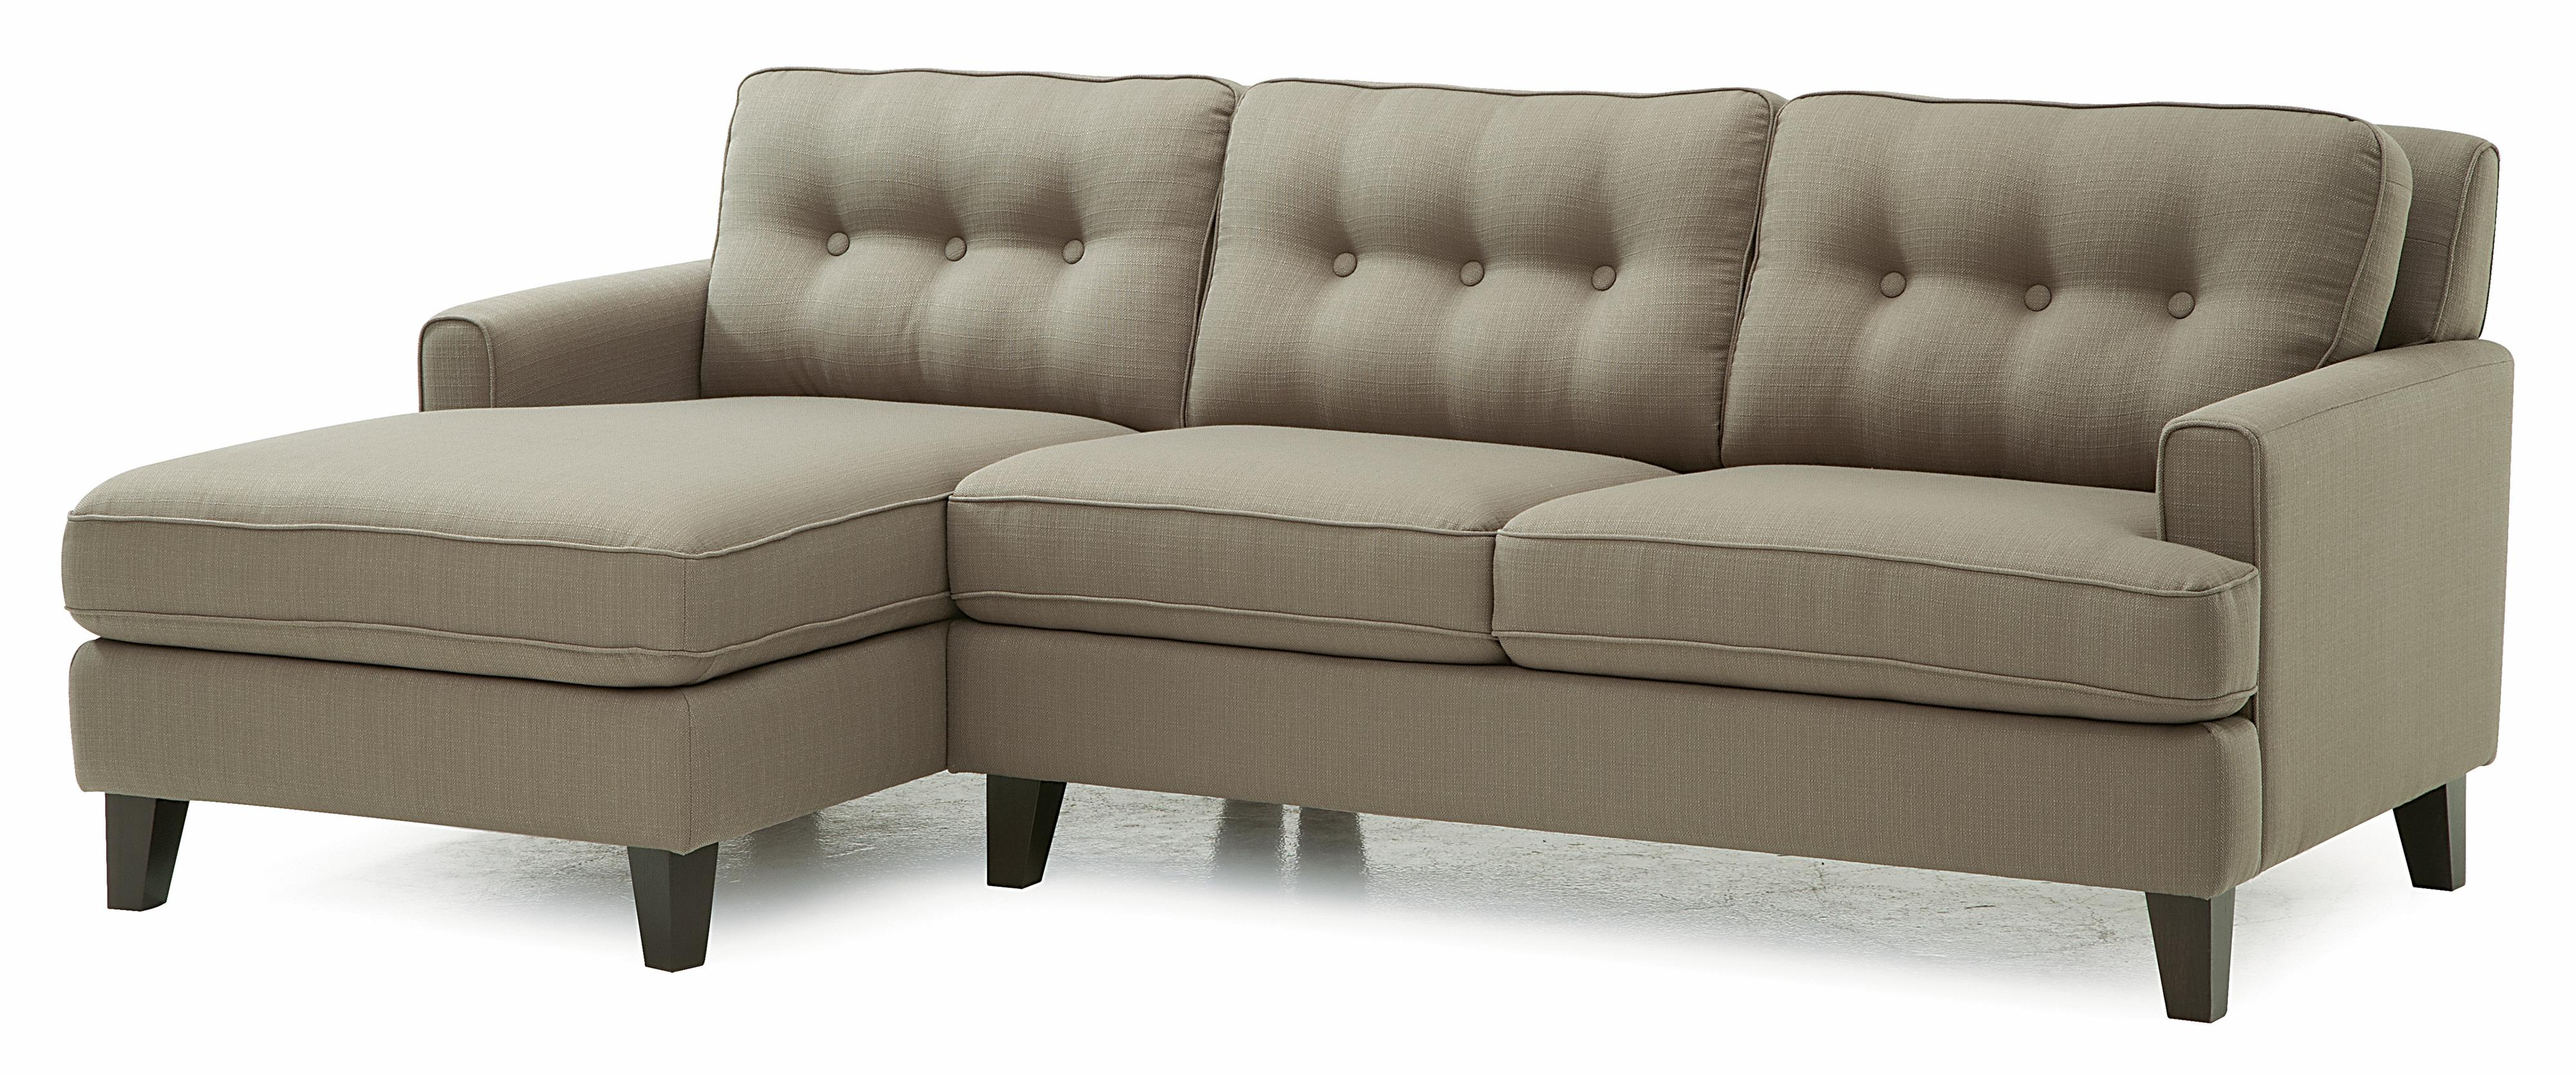 Palliser Barbara Two Piece Sectional Sofa with LHF Chaise AHFA